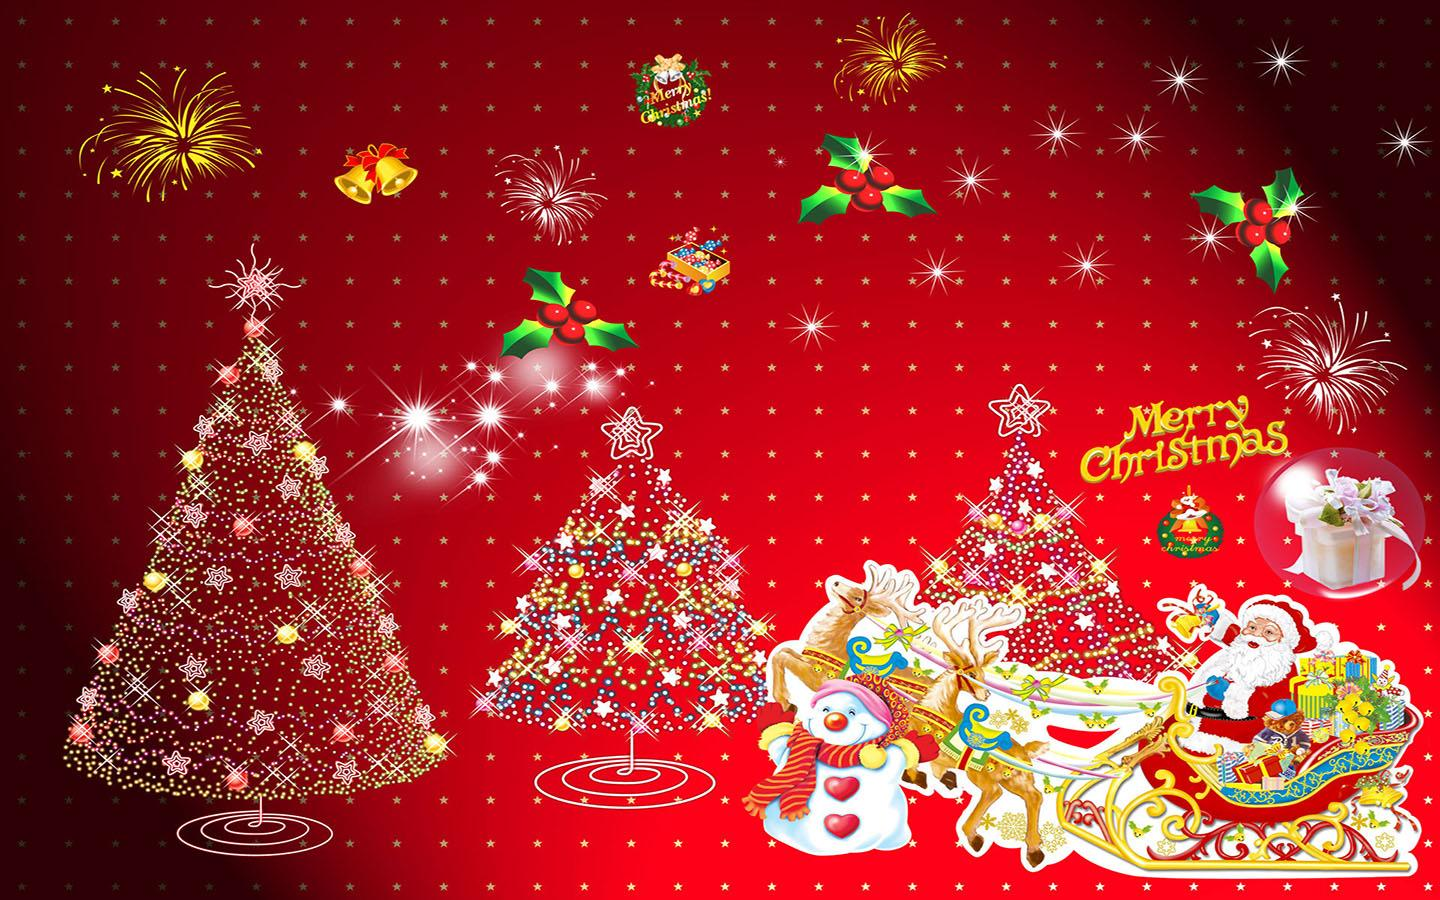 Merry Christmas wallpaper 1.01 APK Download - Android ...